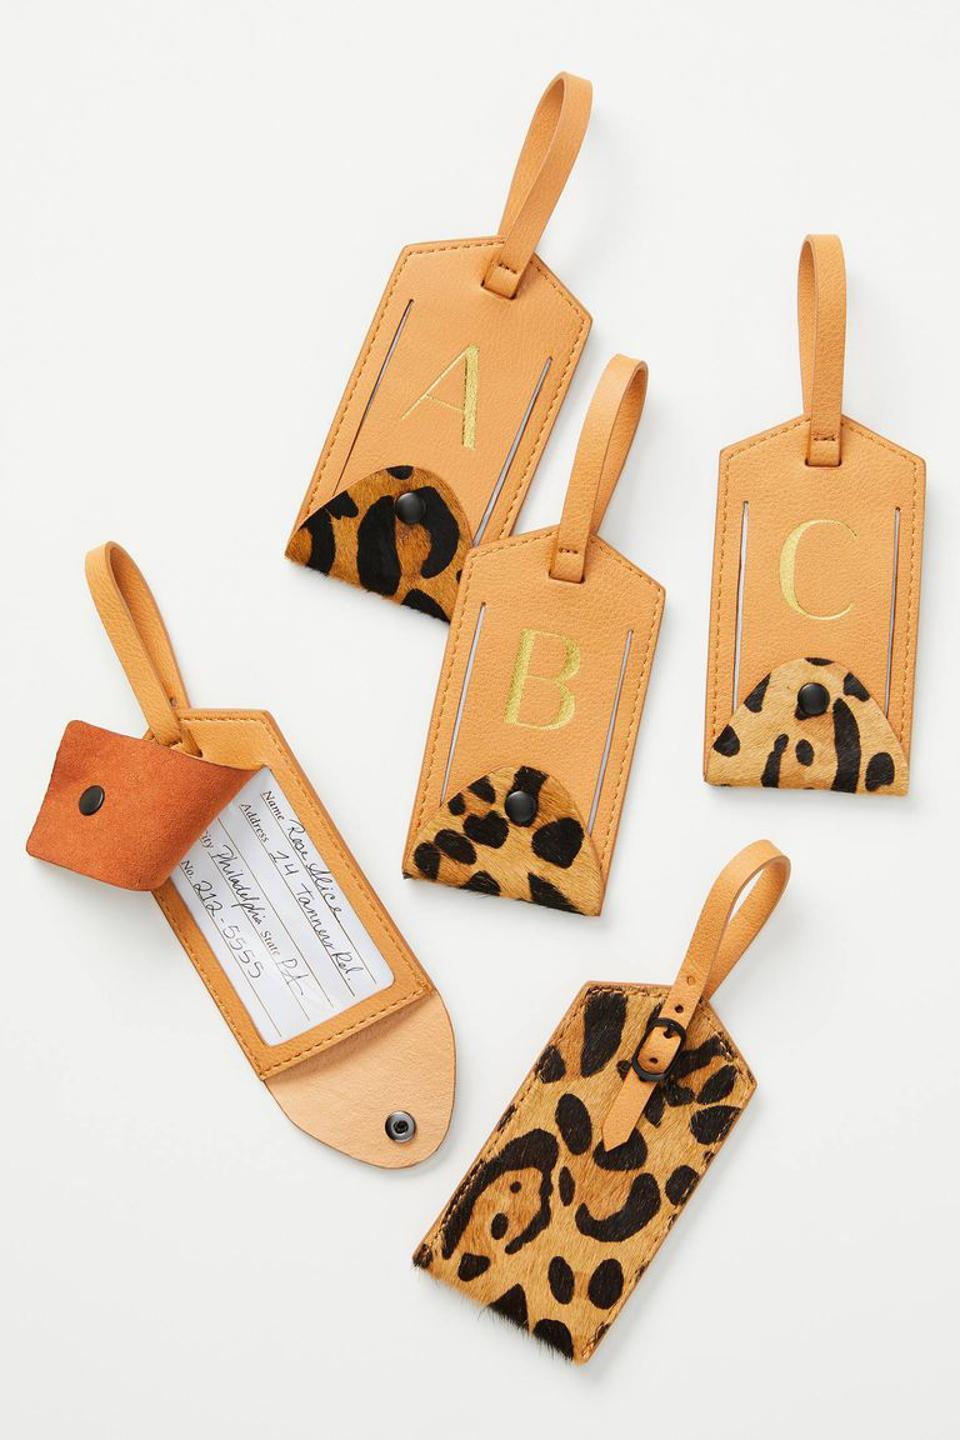 Mongrammed luggage tag from Anthropolgie